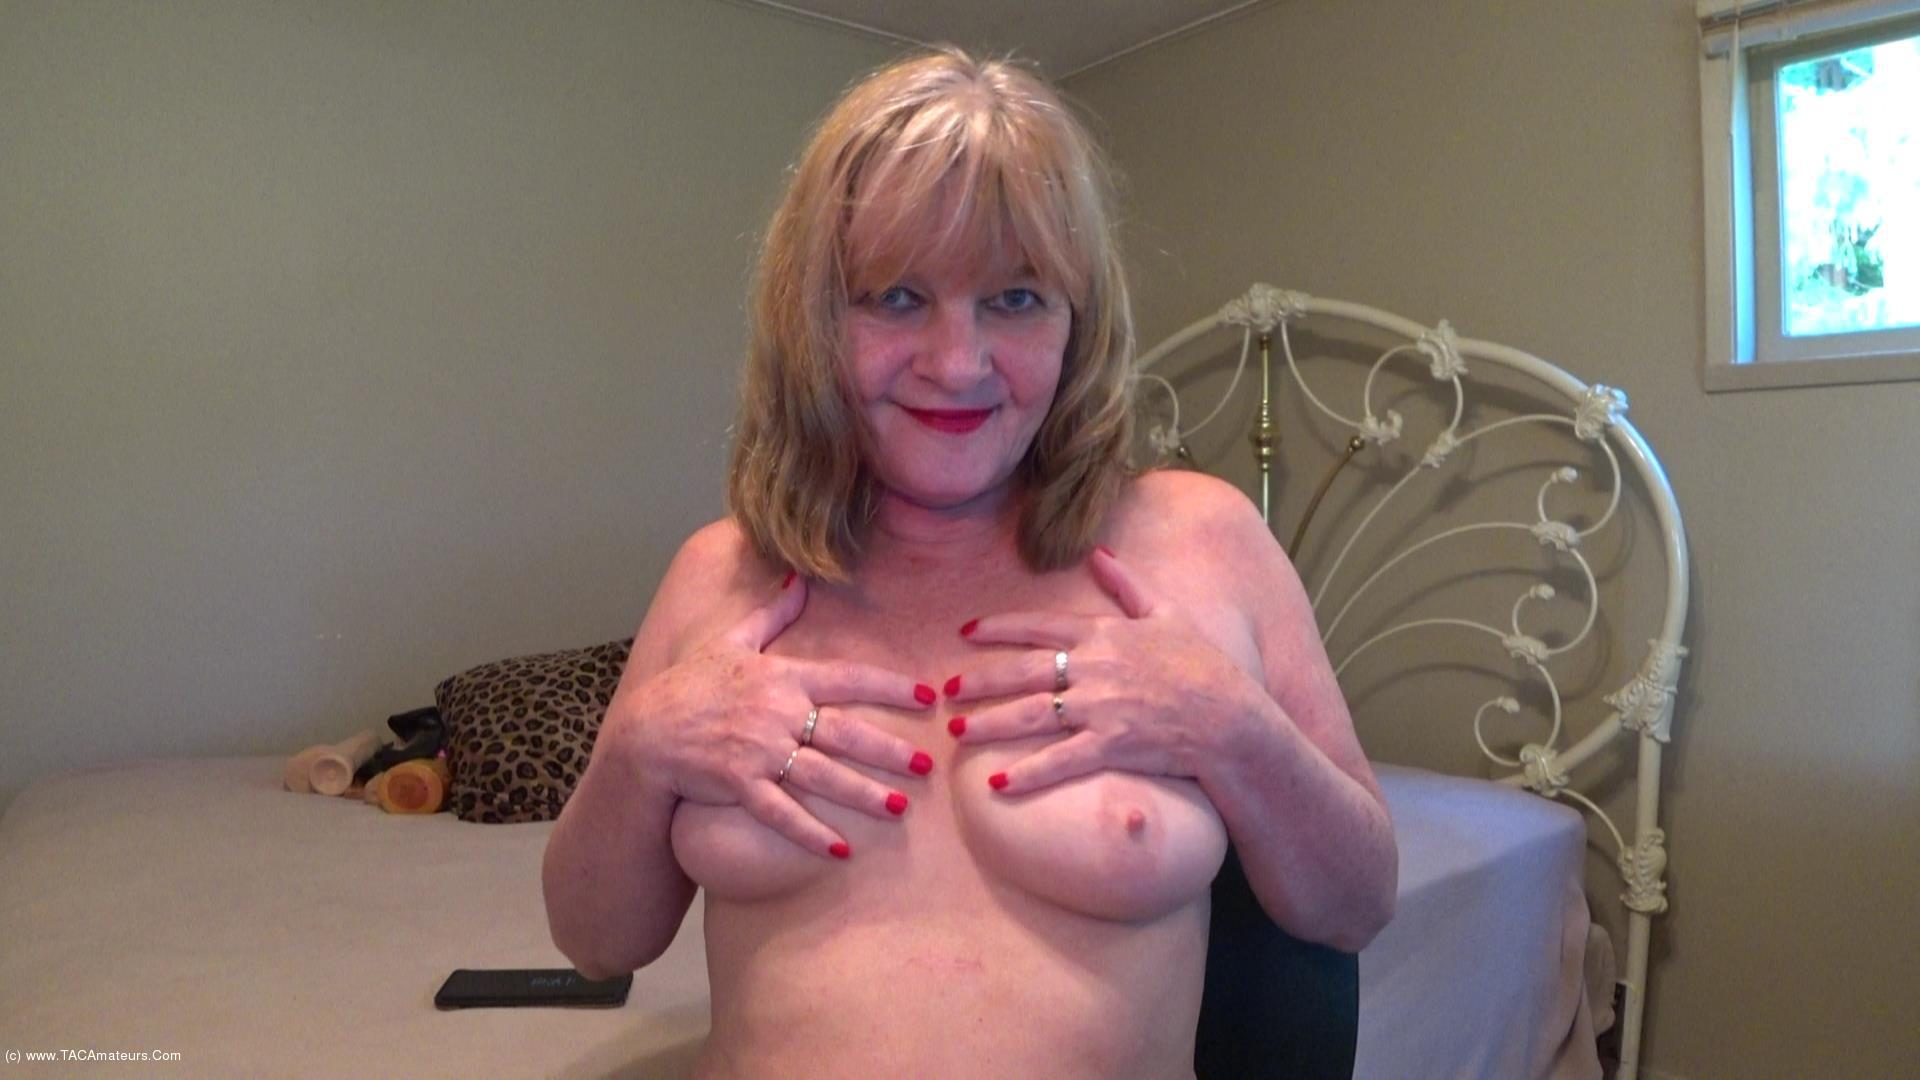 CougarBabeJolee - Titty Play & Smoking scene 1